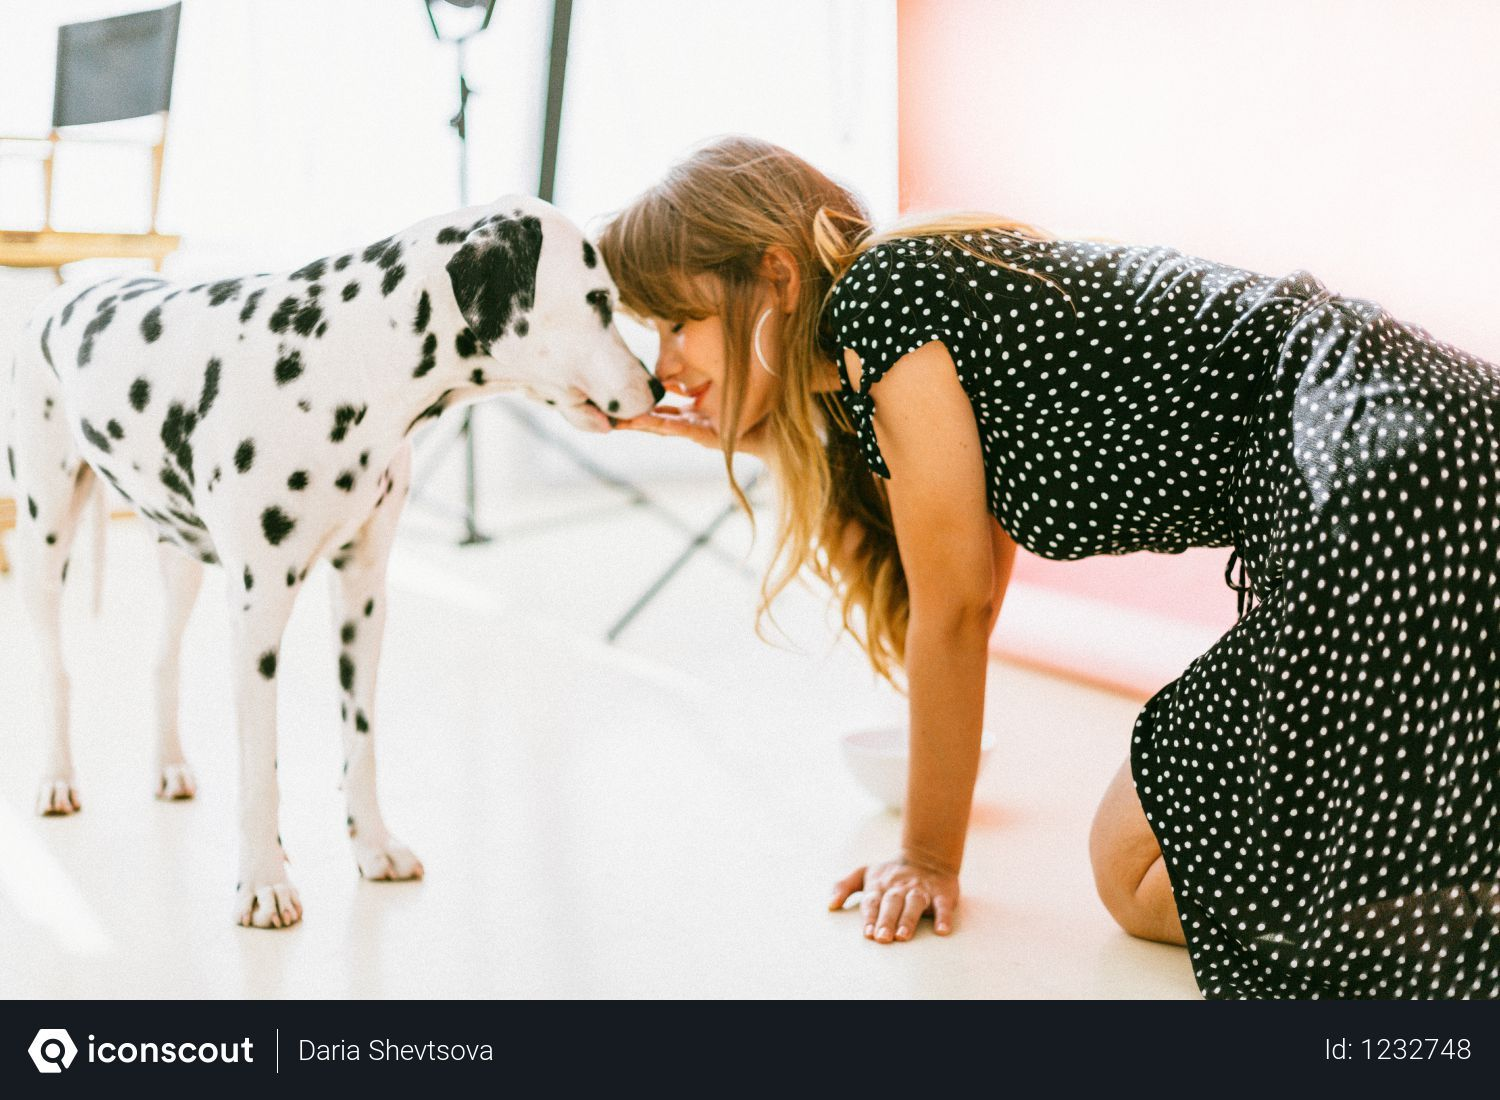 Free Woman Kissing White And Black Dalmatian Photo Download In Png Jpg Format Dog Personality Beautiful Dogs Photos Beautiful Dogs